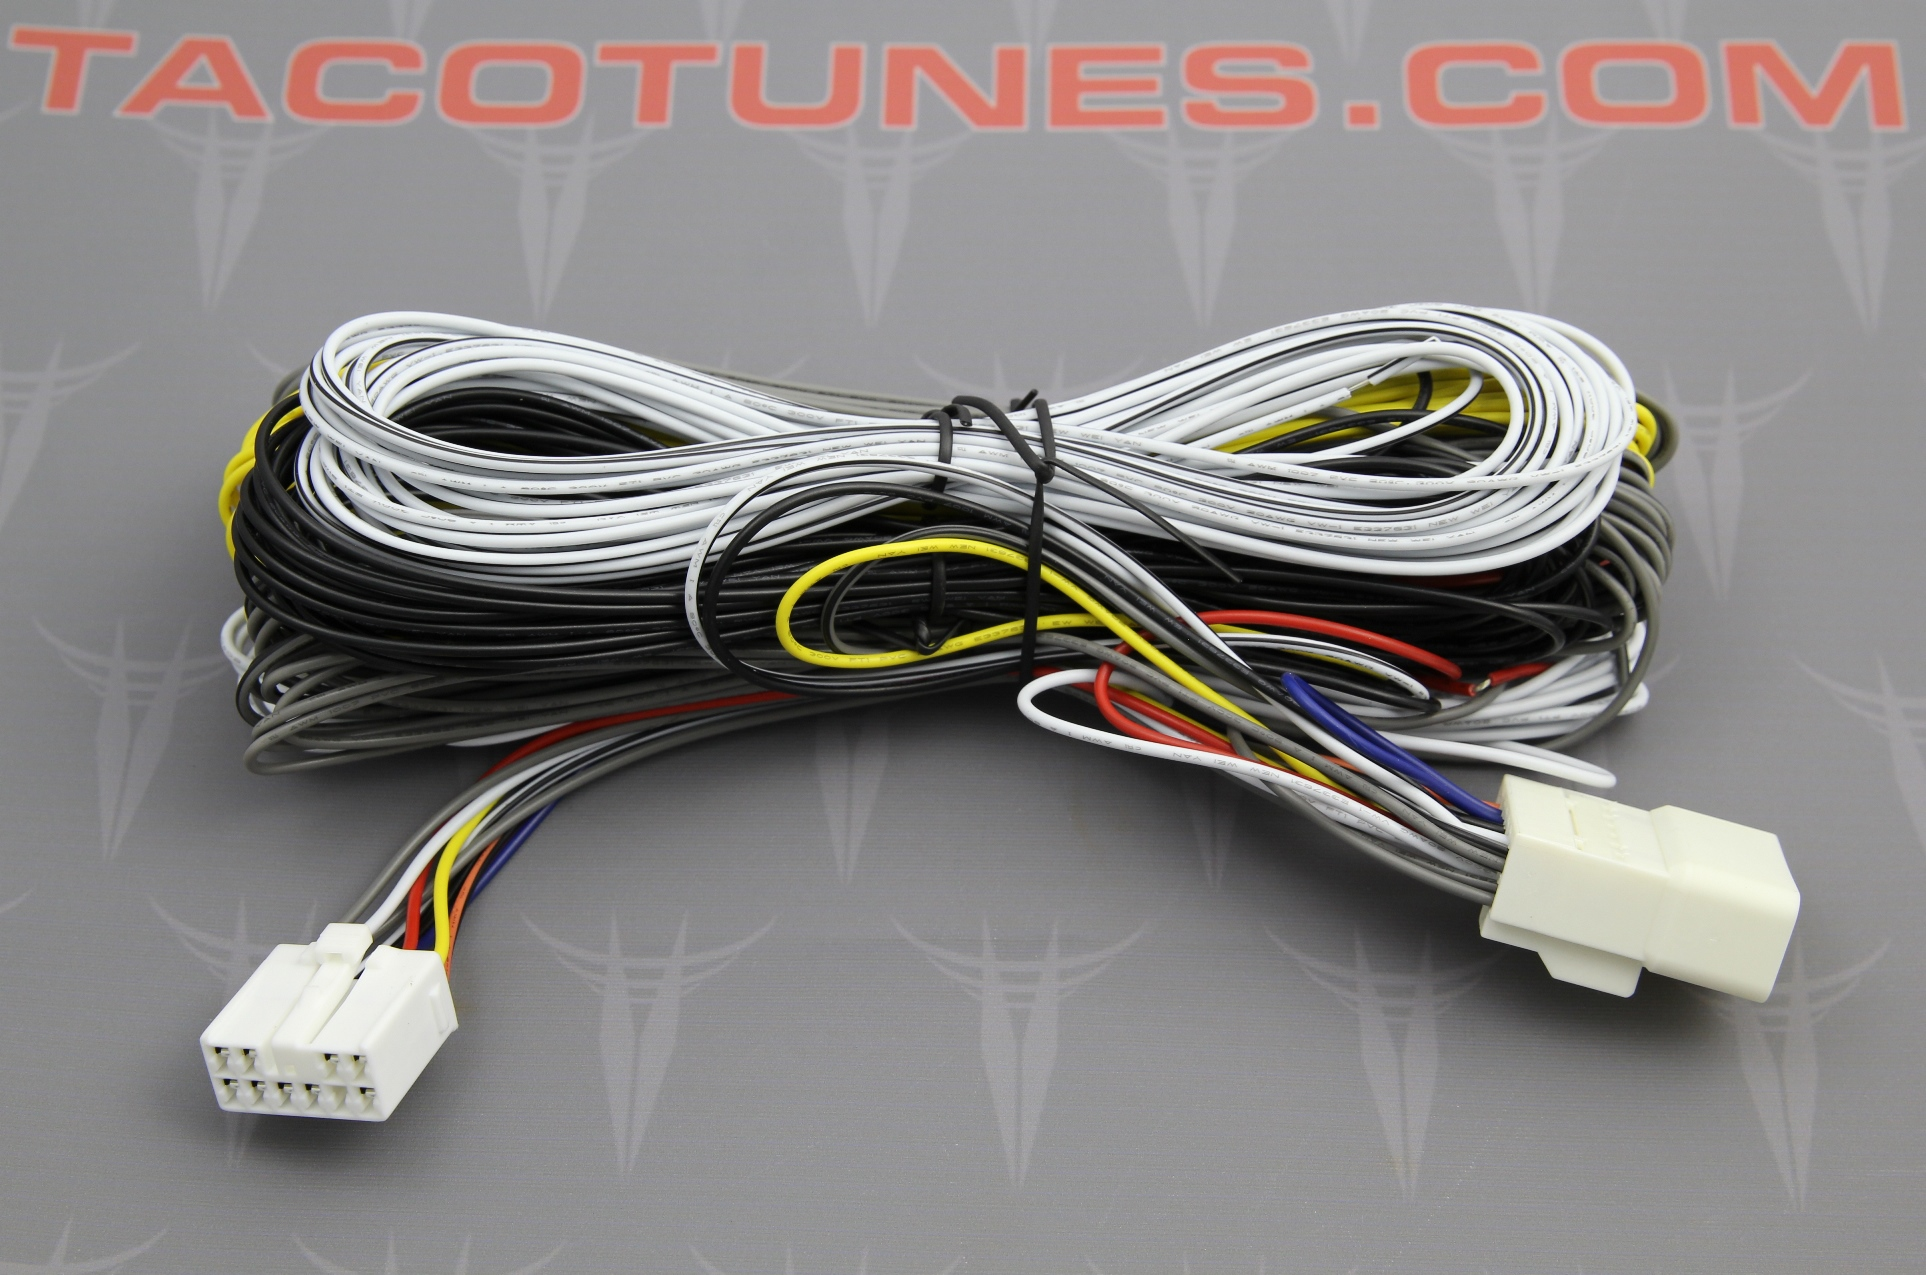 2002 Toyota Tundra Jbl Stereo Wiring Harness Additionally 2003 Toyota